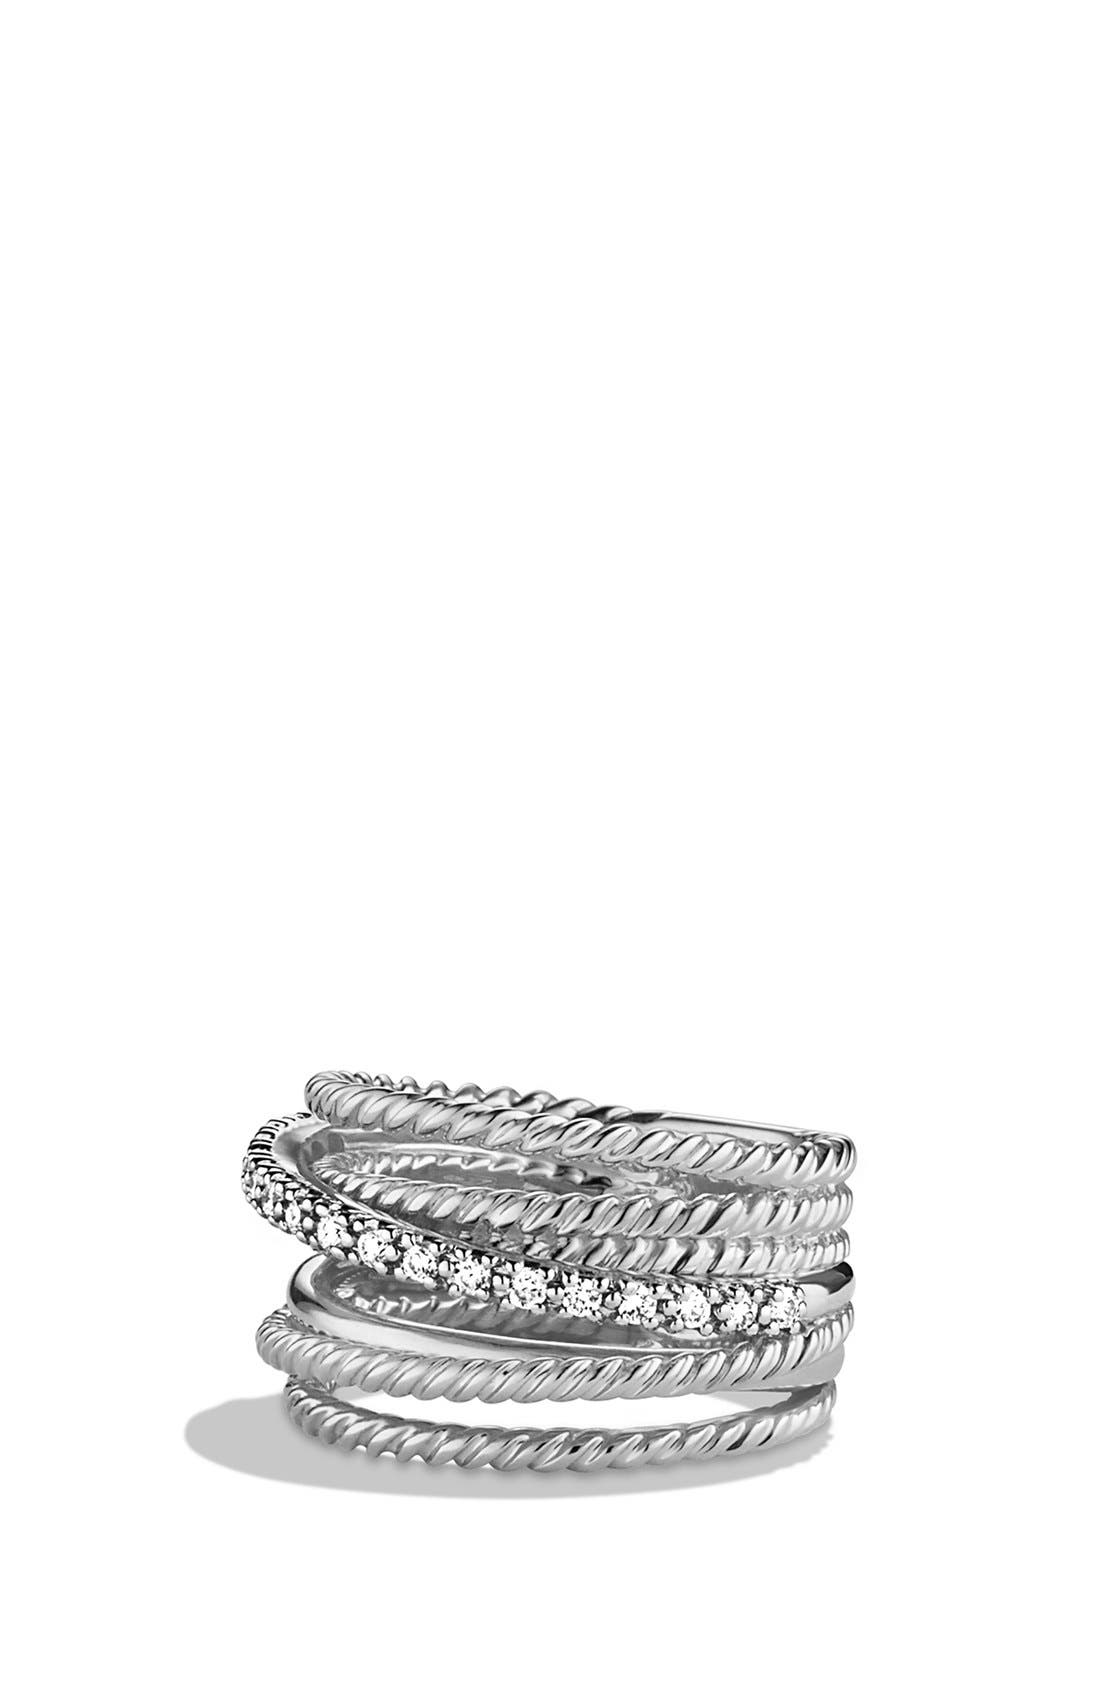 Alternate Image 1 Selected - David Yurman 'Crossover' Wide Ring with Diamonds